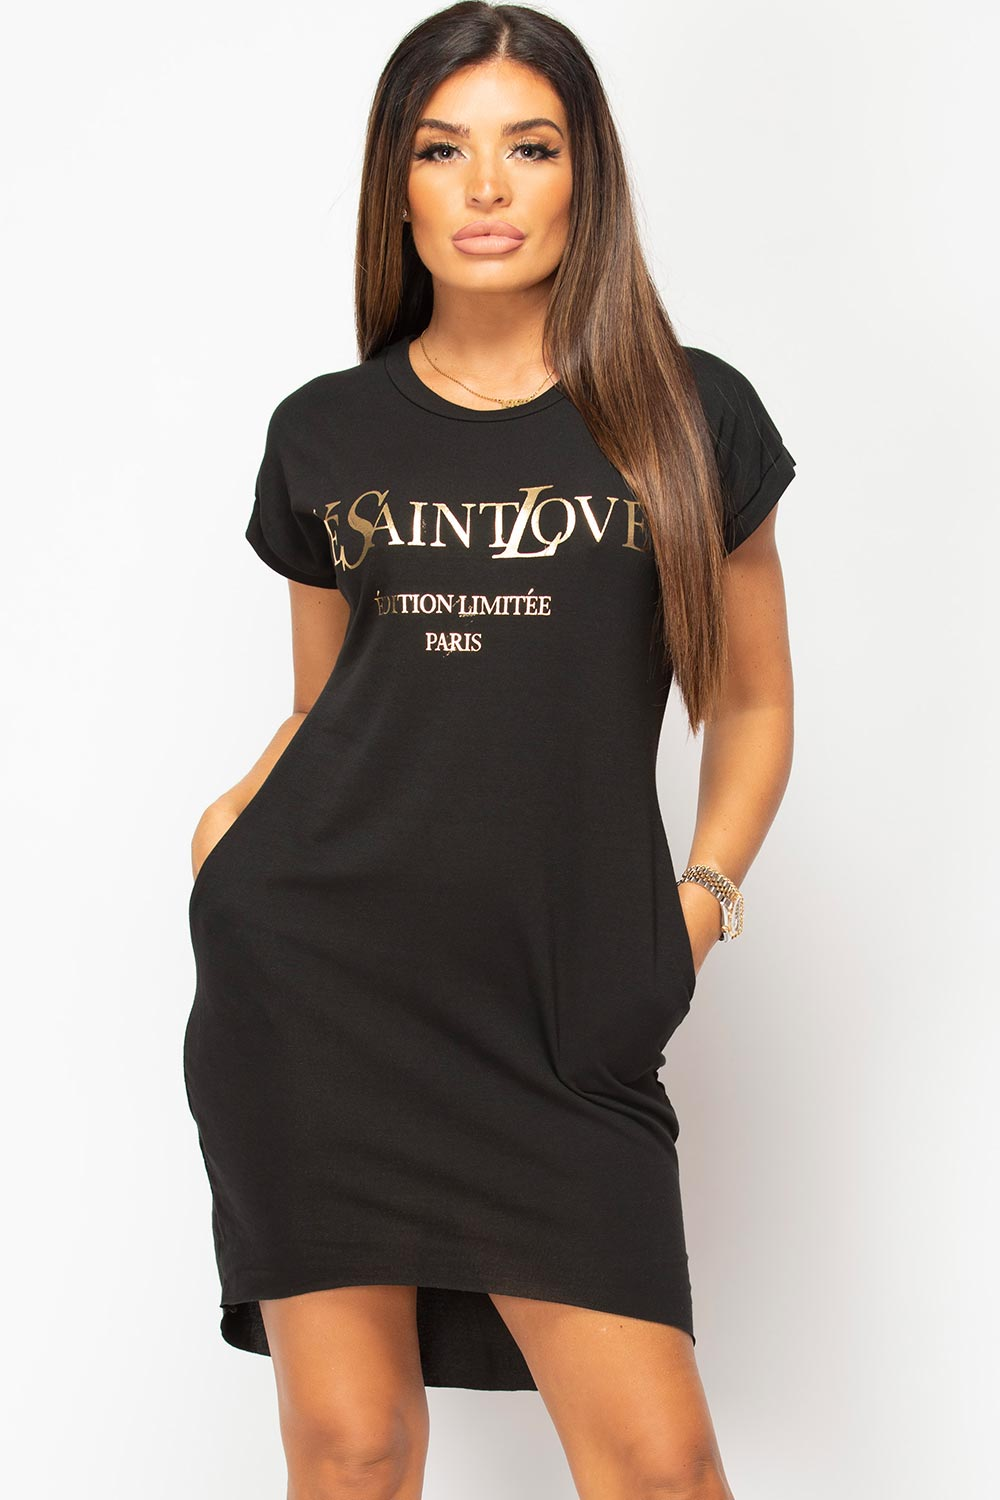 ye saint love slogan t shirt dress uk